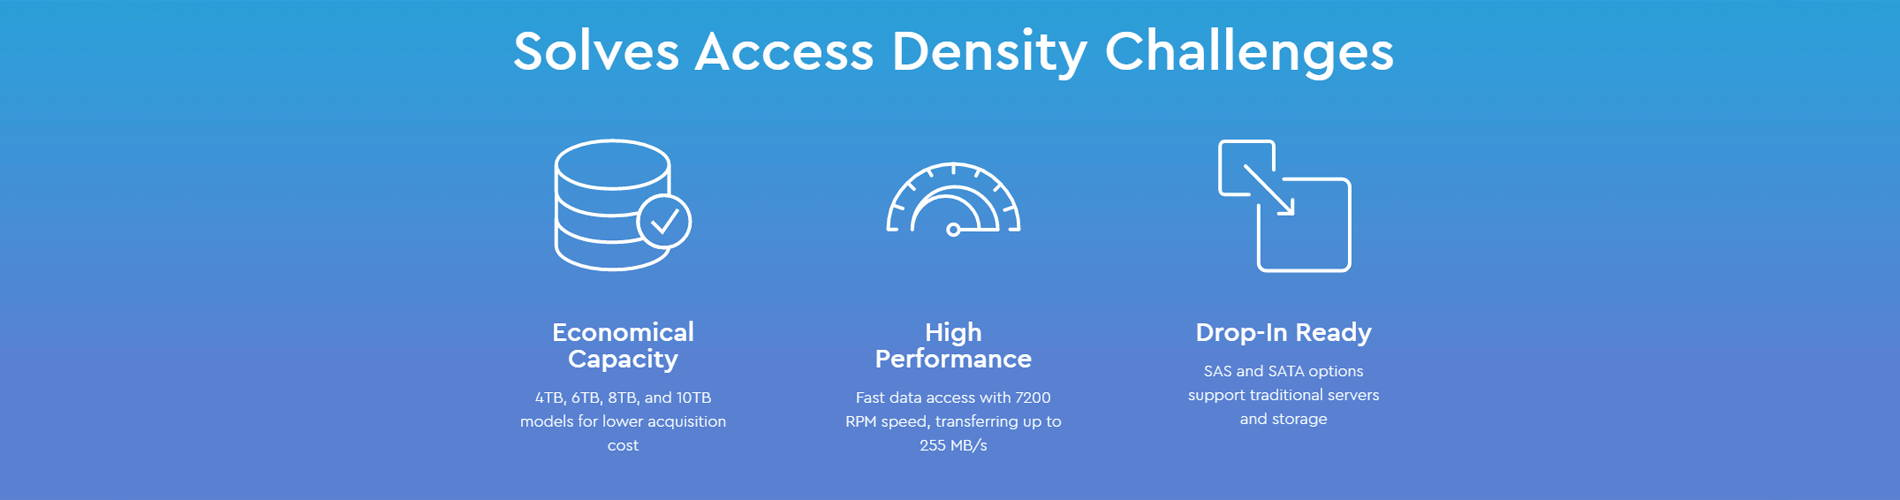 Solves Access Density Challenges